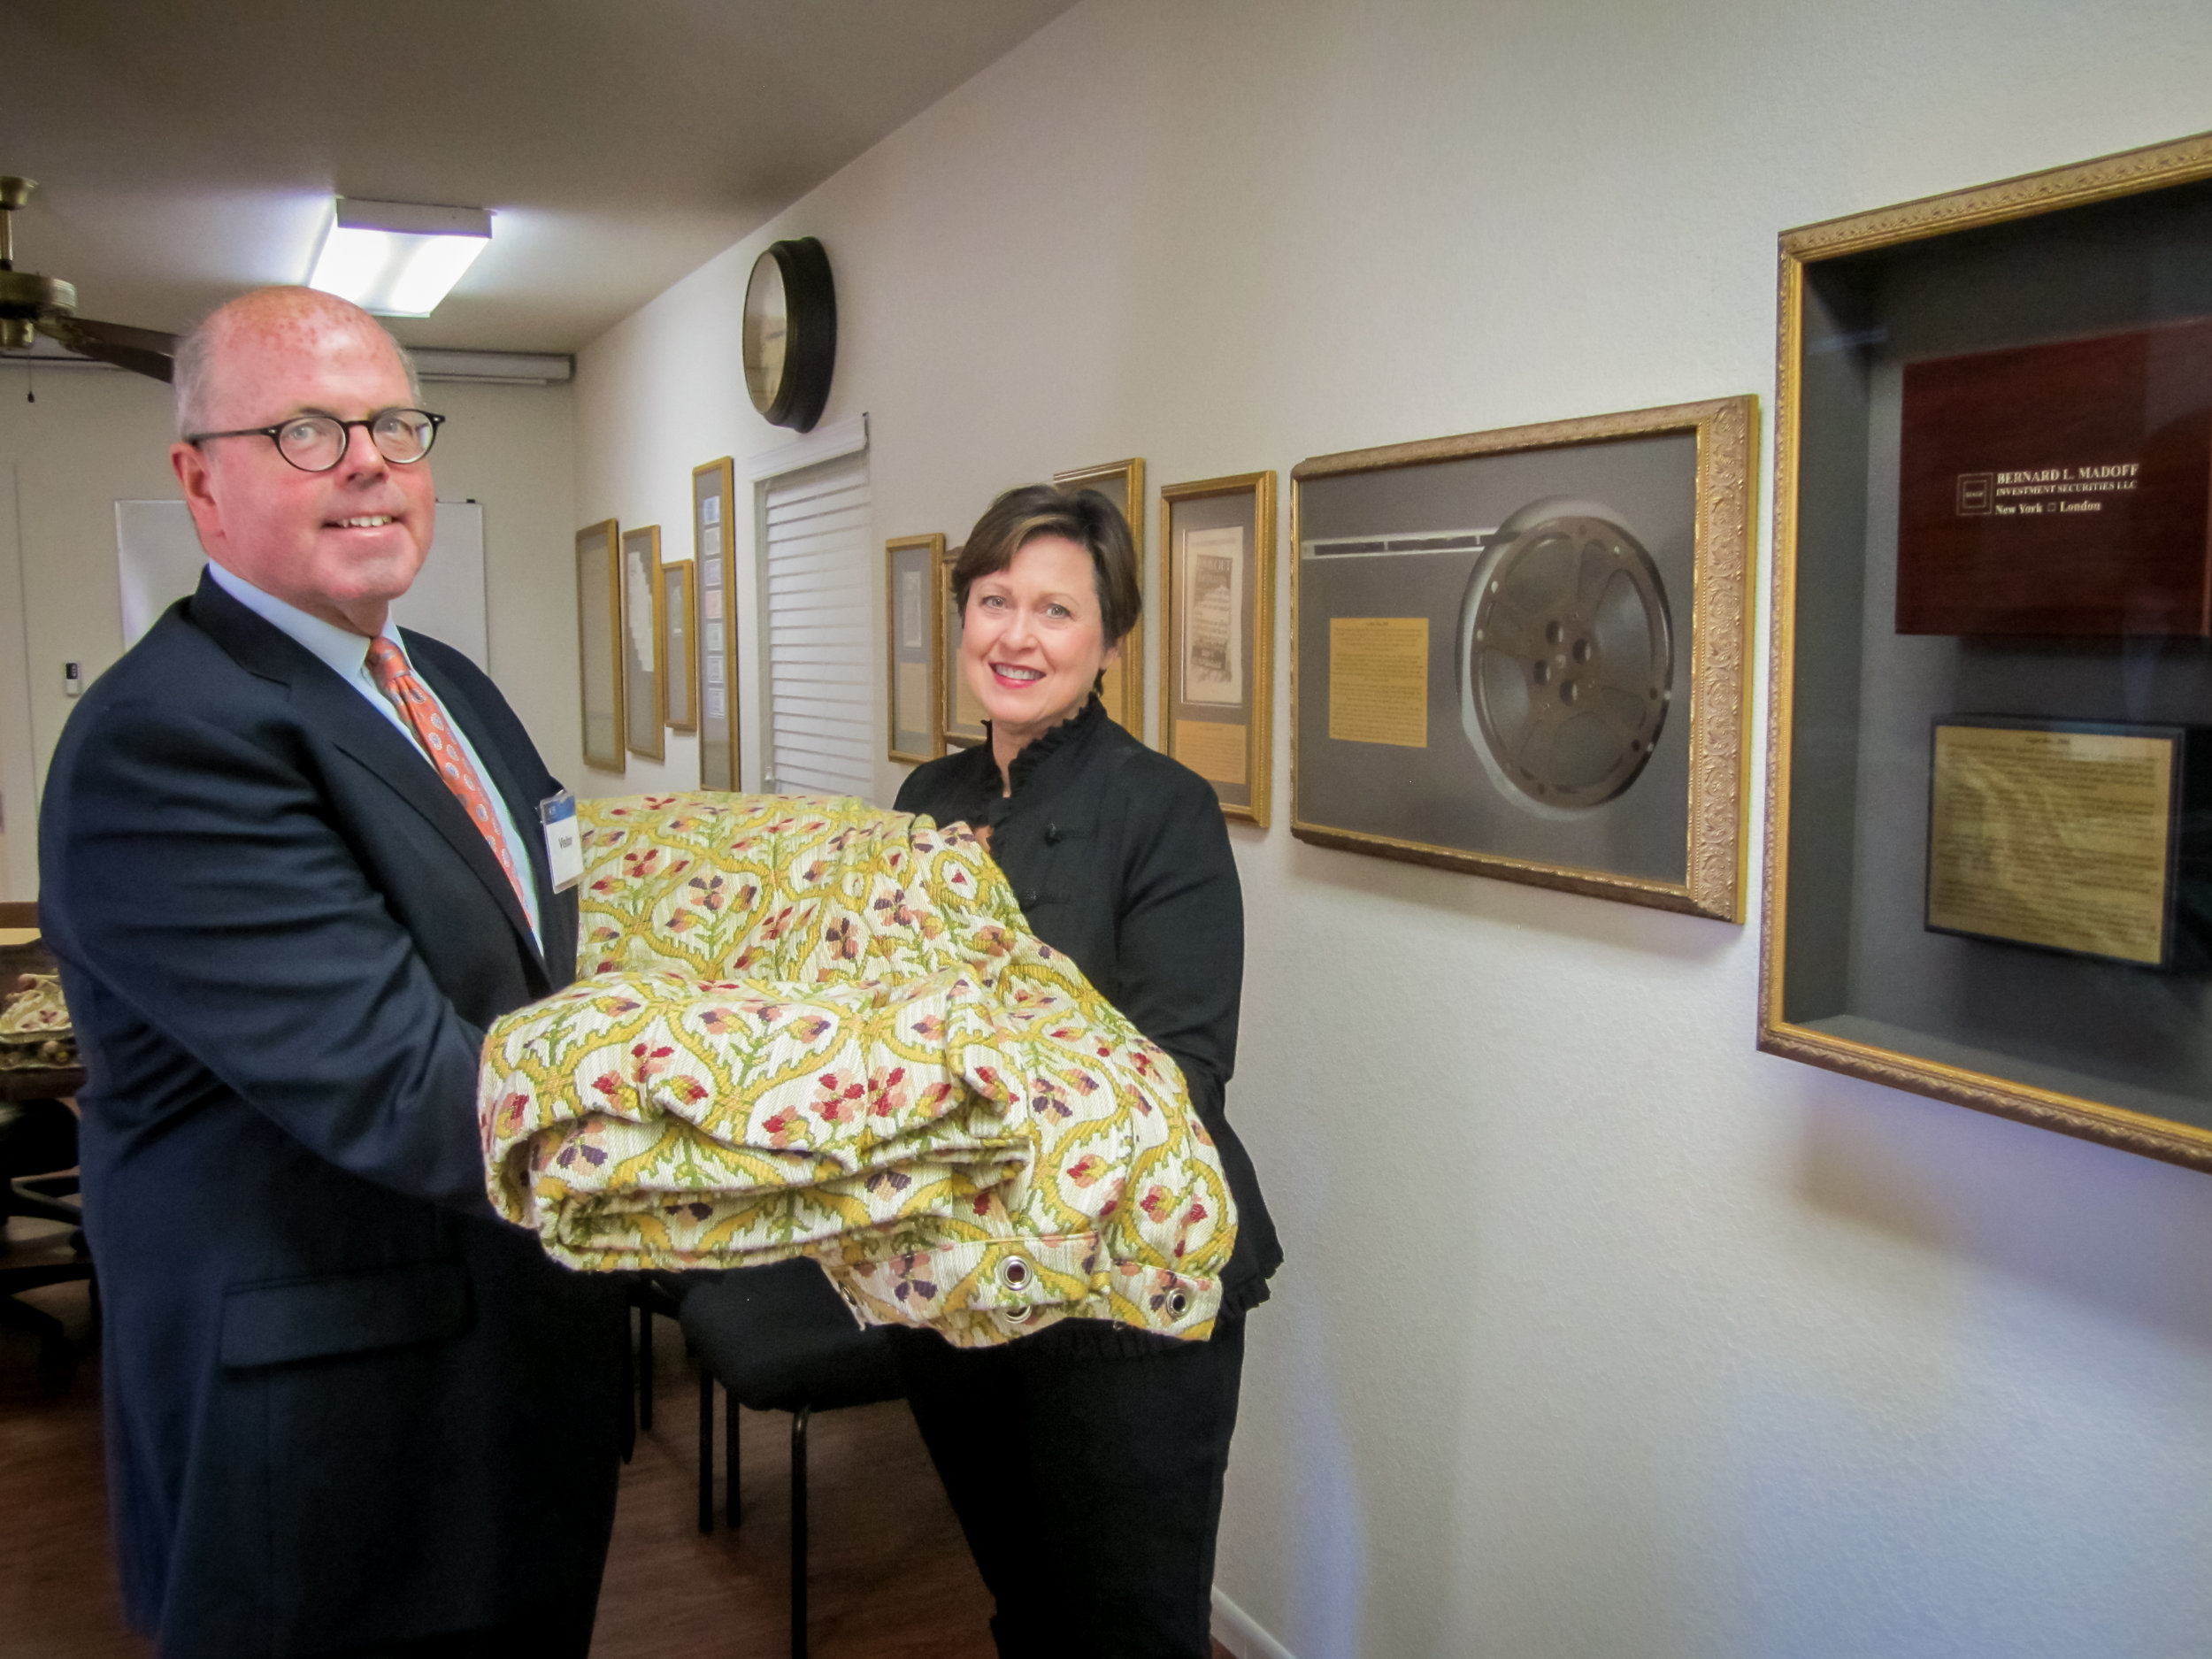 Dennis Lynch, former Tyco VP and Chief Litigation Counsel, delivers the infamous shower curtain to ACFE Chief Operations Officer Jeanette LeVie.